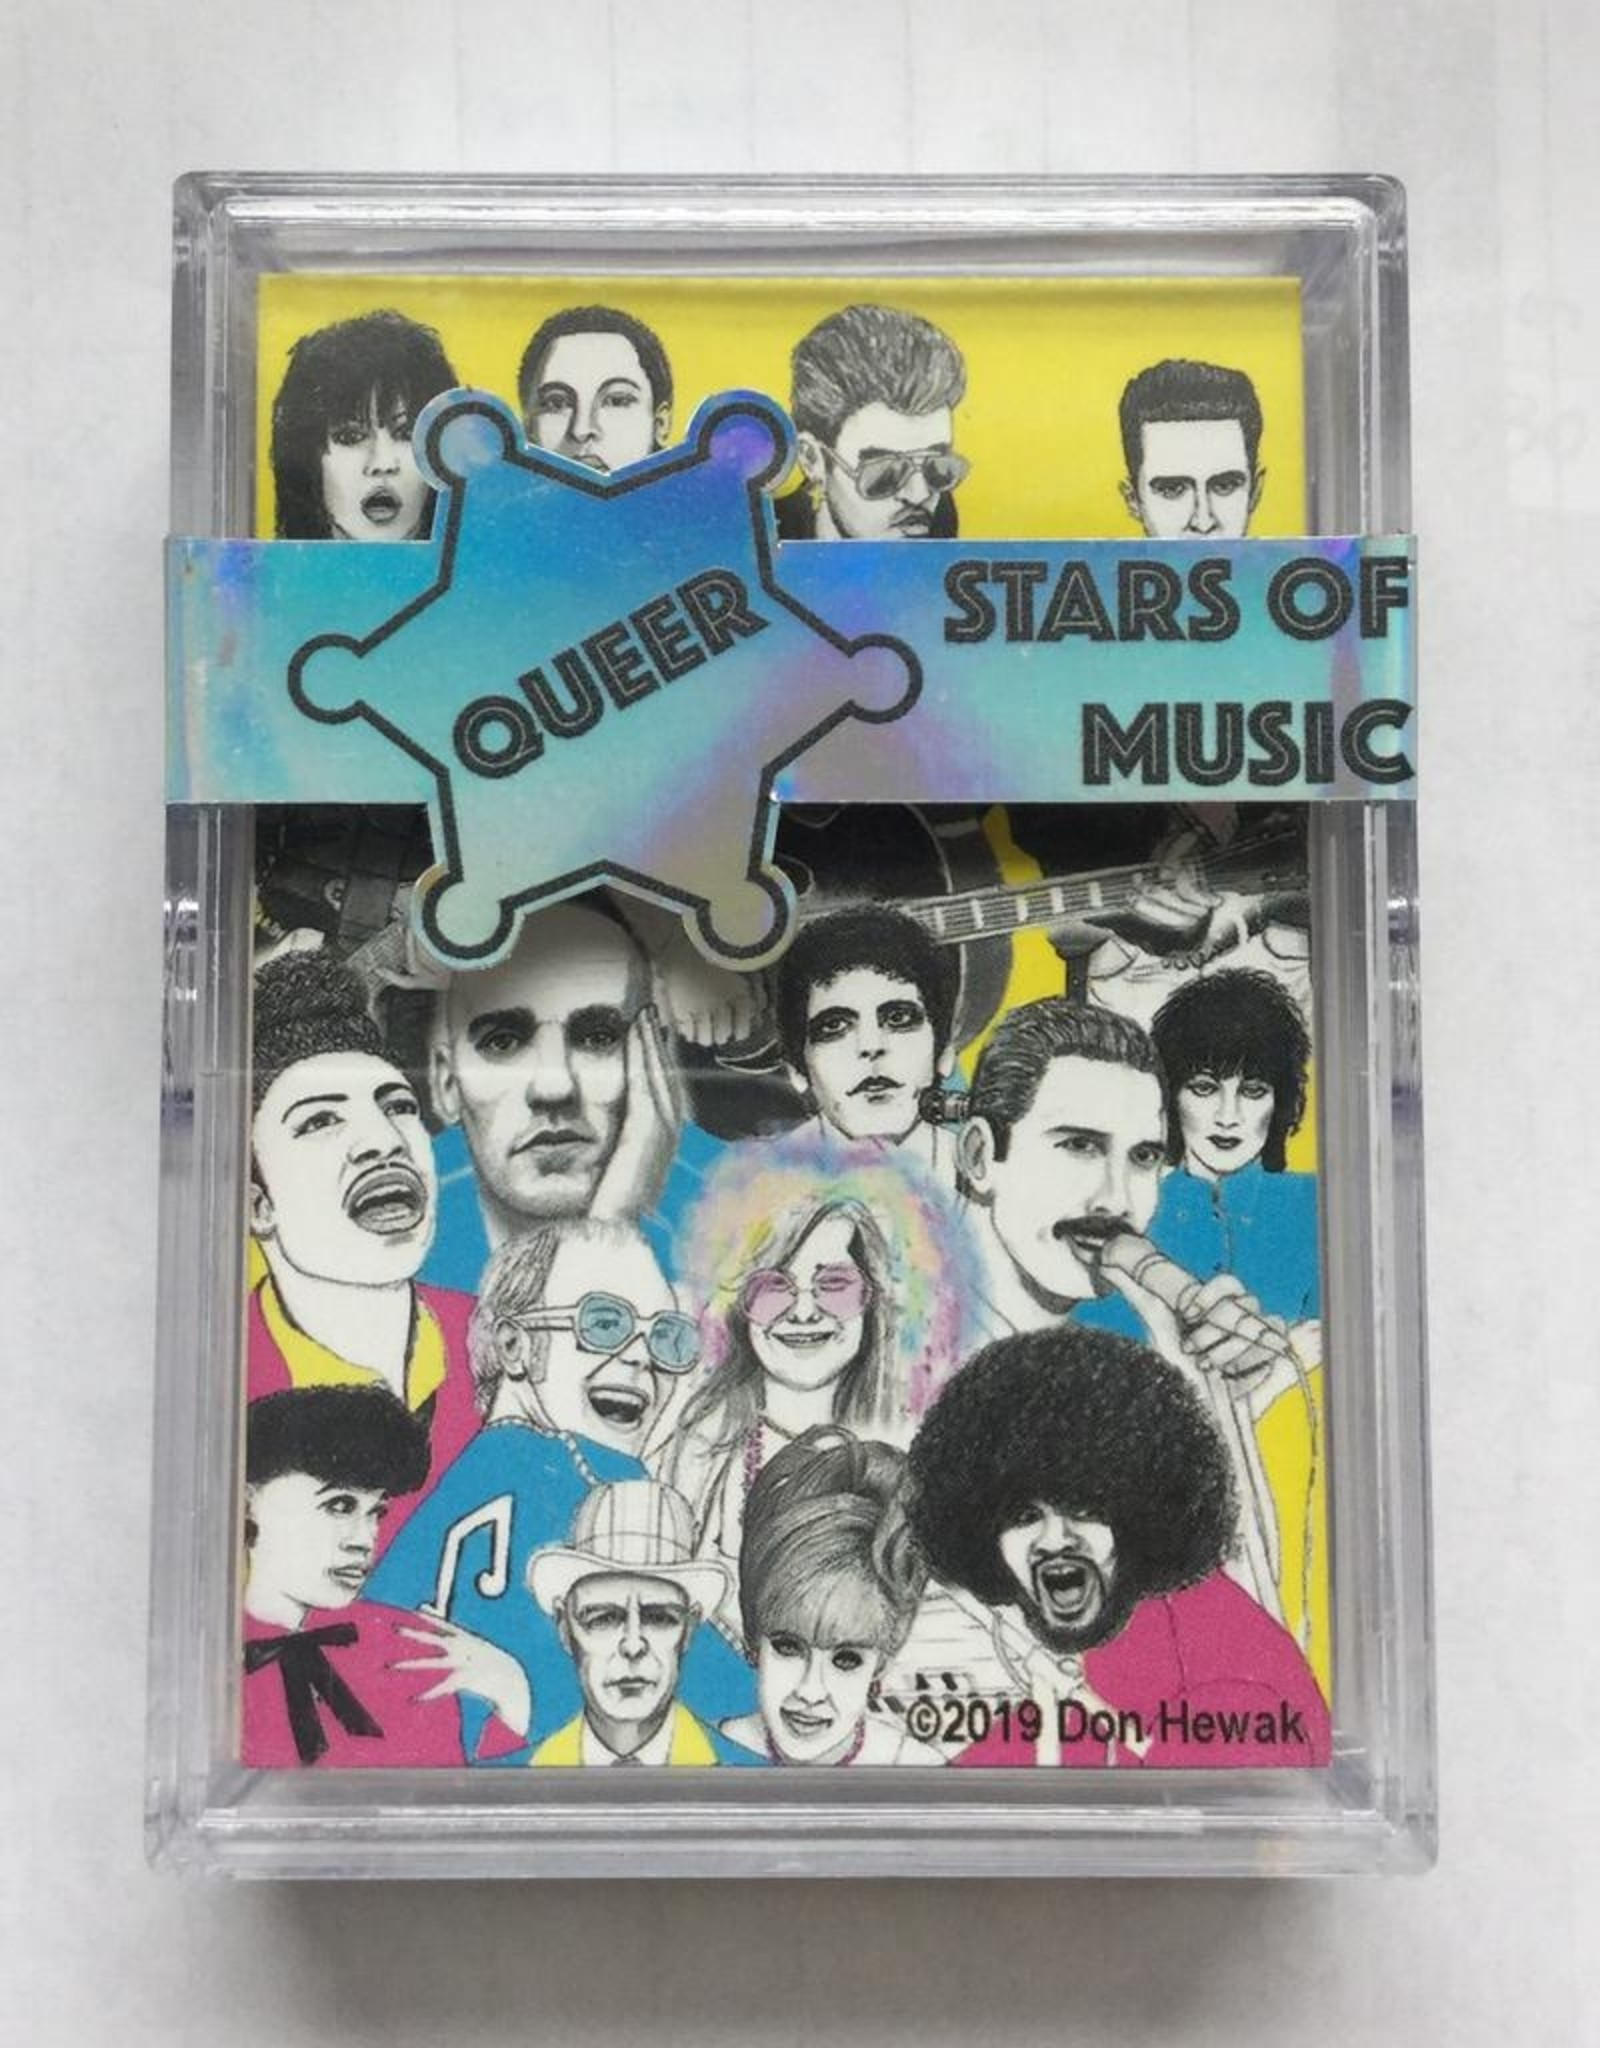 Hewak, Don Queer Stars of Music, Trading Cards